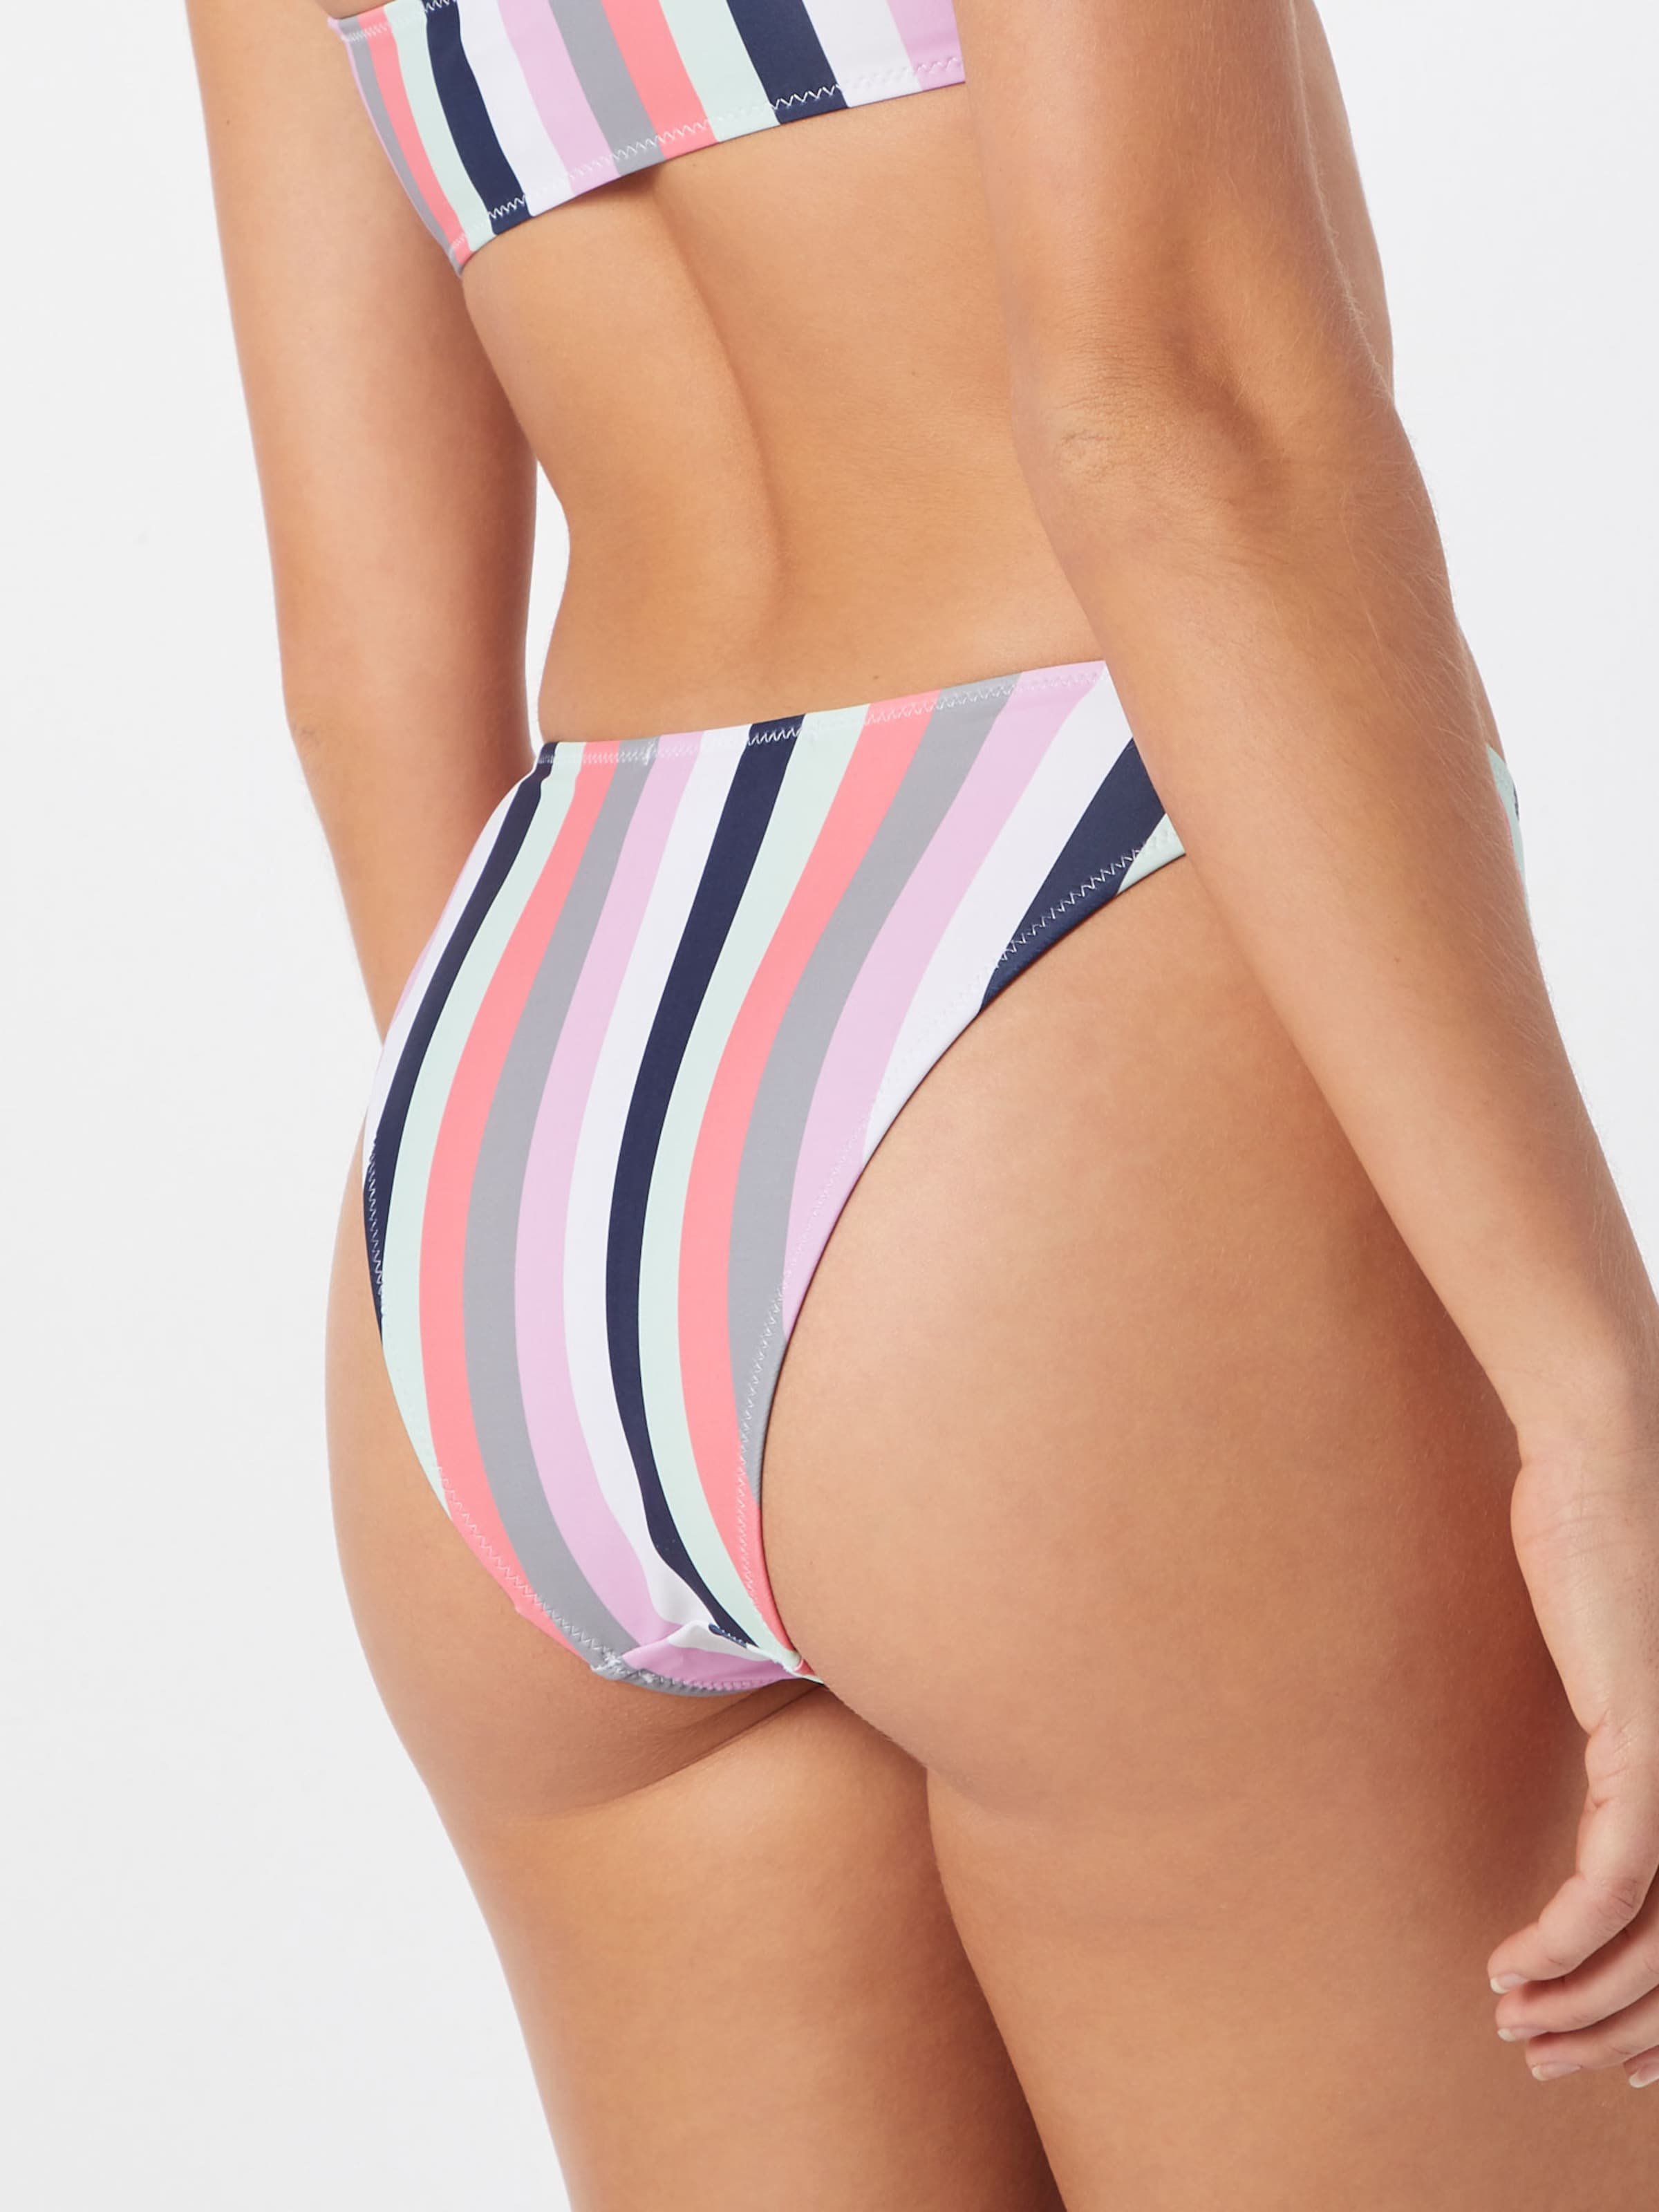 In In Pink Pink Bikinibroek Missguided Missguided Bikinibroek Missguided In Bikinibroek Pink iXkZuP